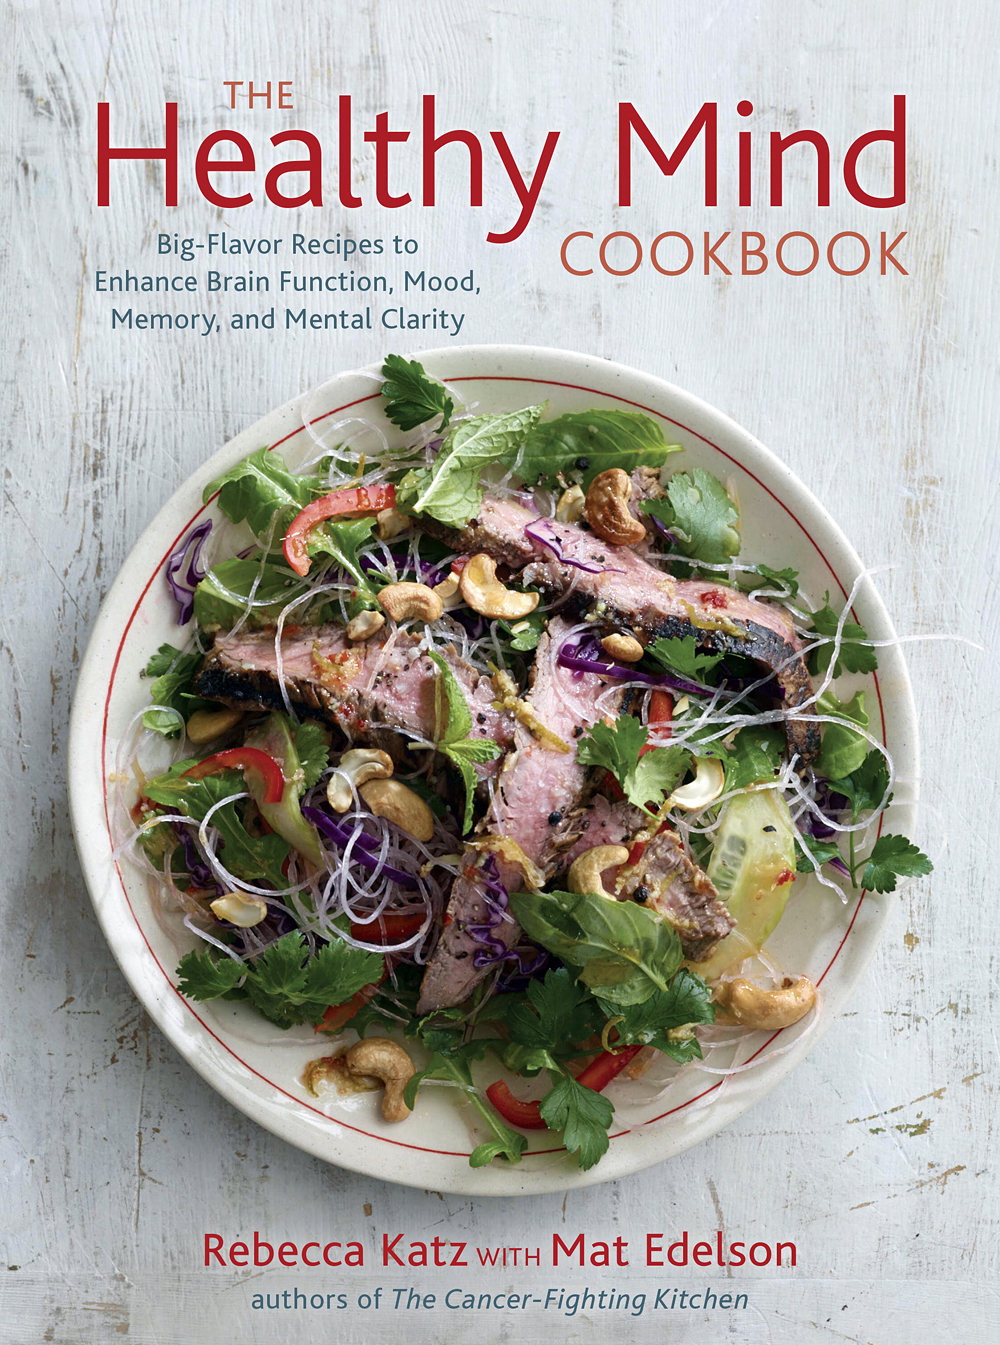 The Healthy Mind Cookbook. by Rebecca Katz